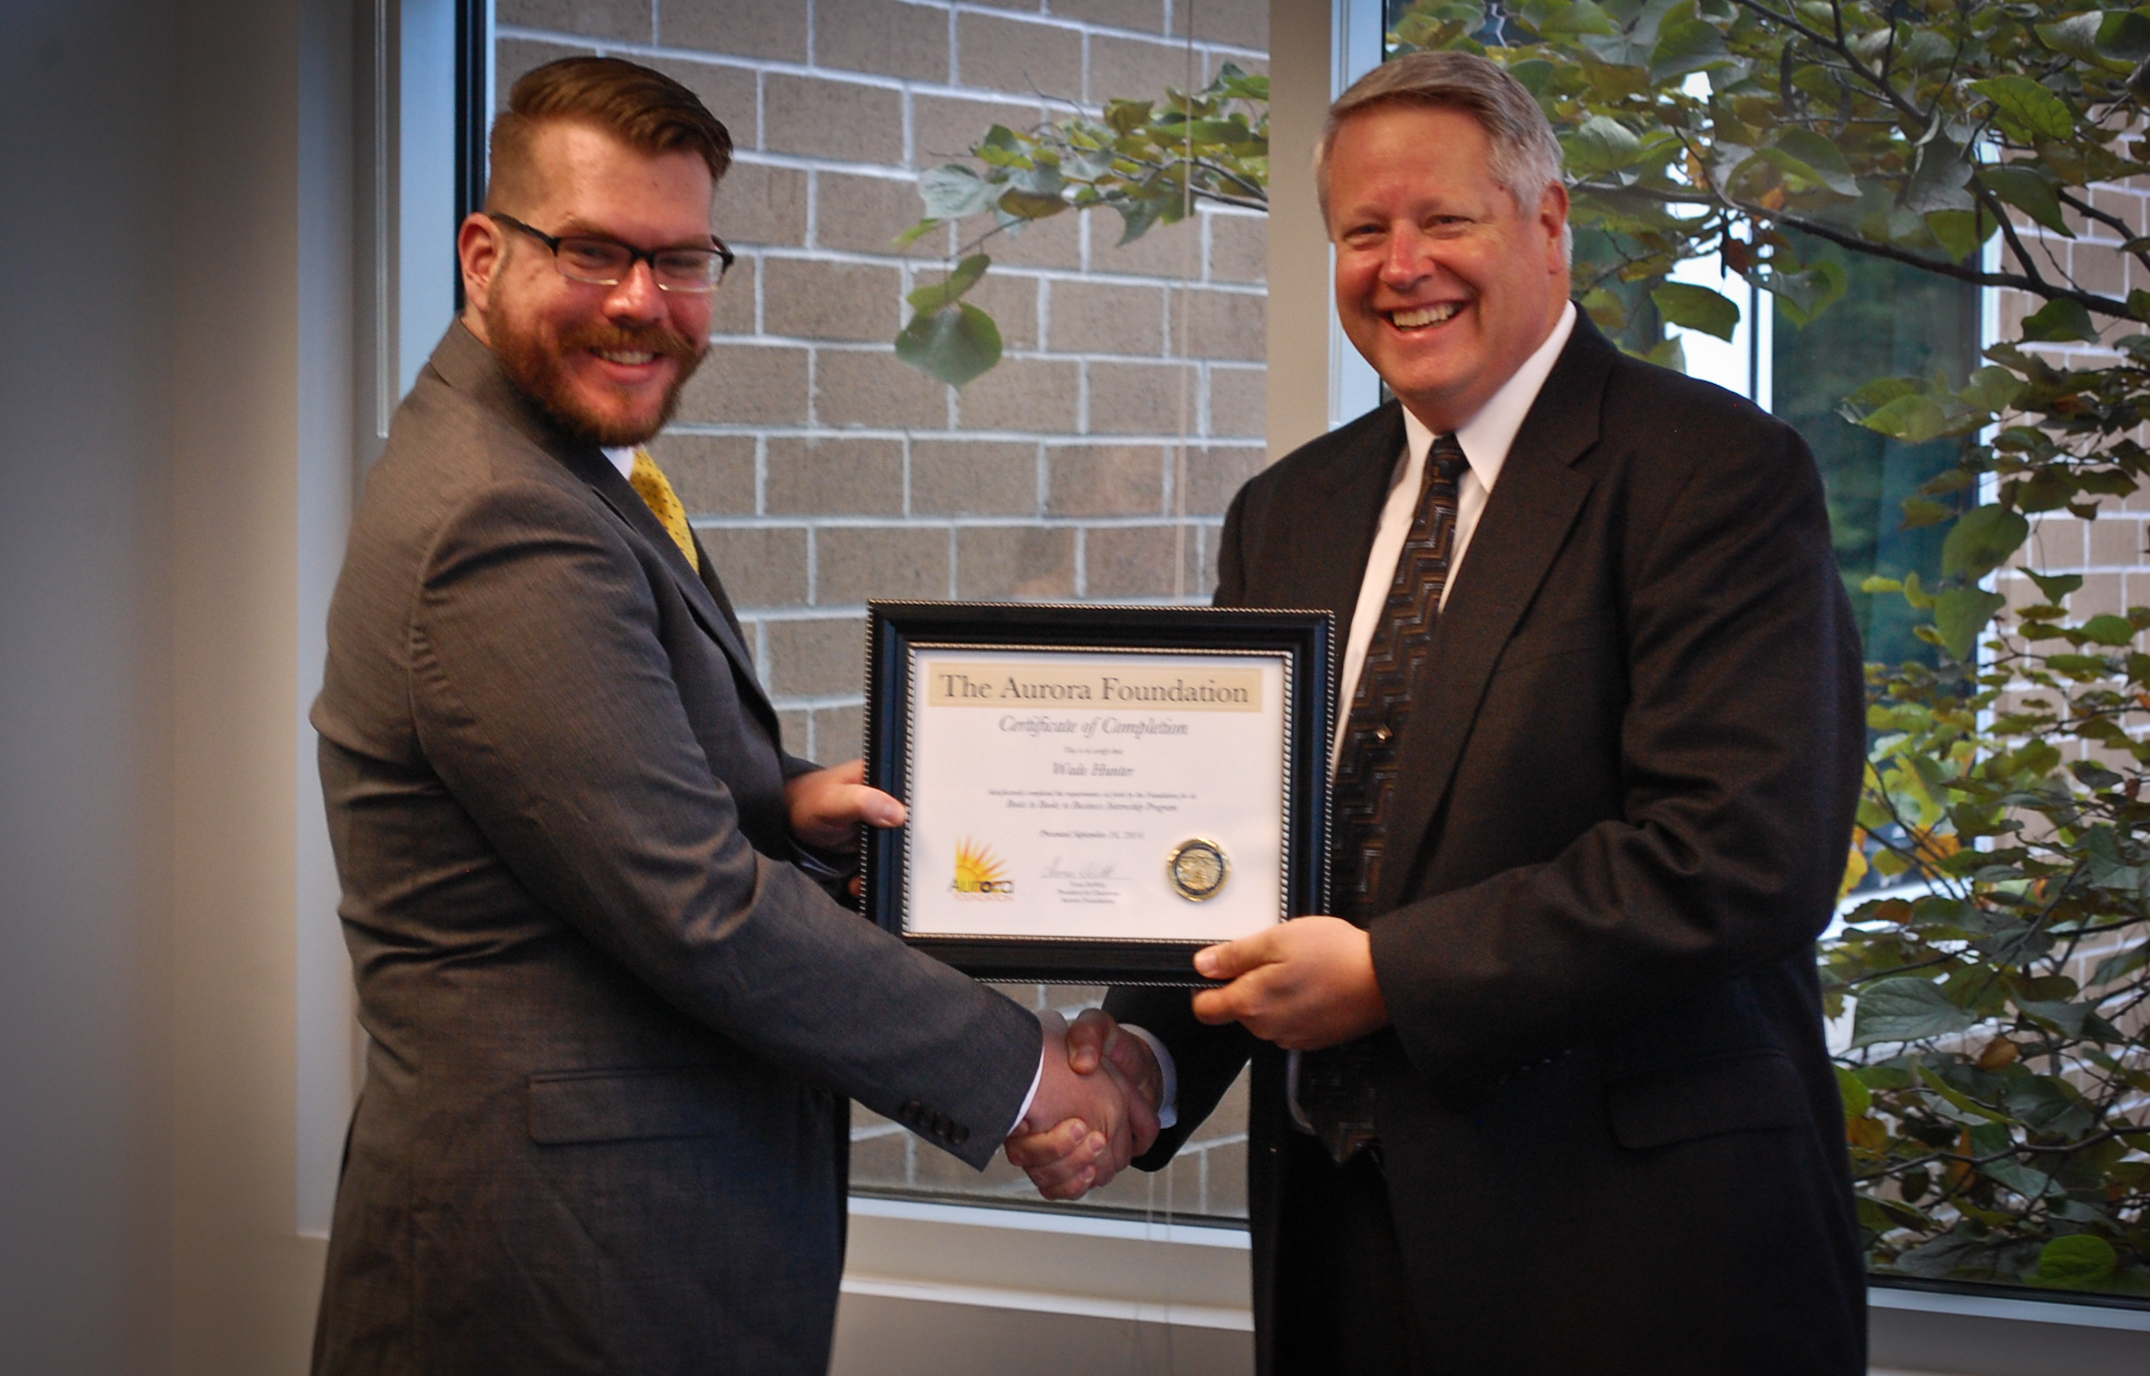 Wade Hunter accepting his Certificate of Completion from Aurora's Chairman, Tom DeWitt